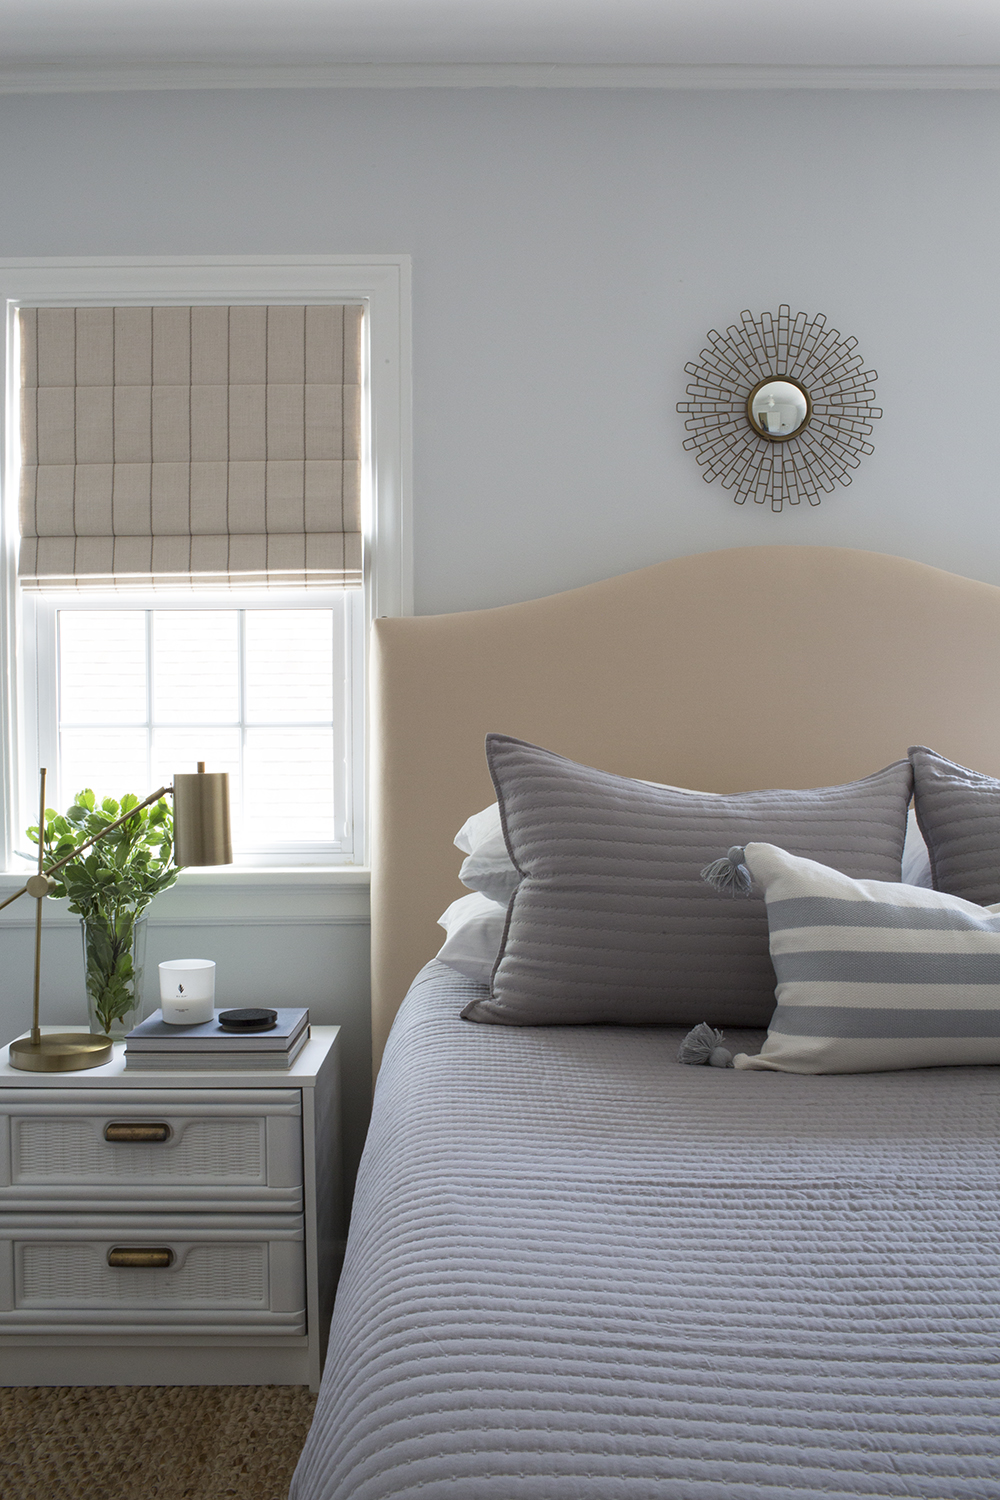 How to Give Your Bedroom a Refresh Using Textiles - roomfortuesday.com